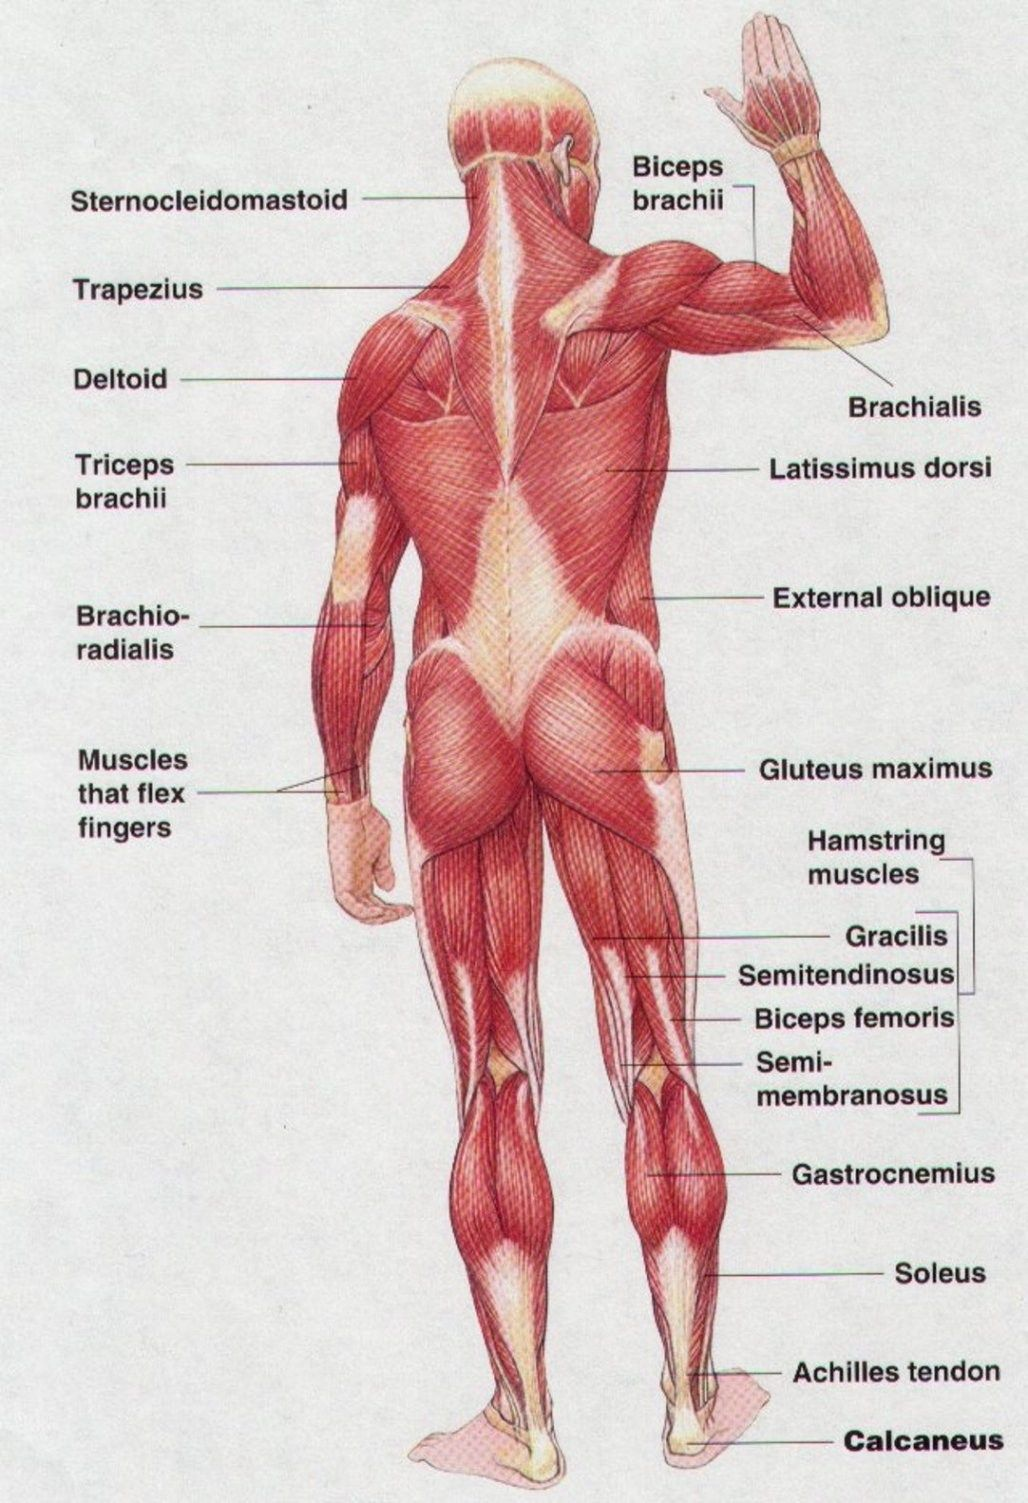 hight resolution of human back muscle diagram human back muscle diagram lower back muscle diagrams labeled muscles human